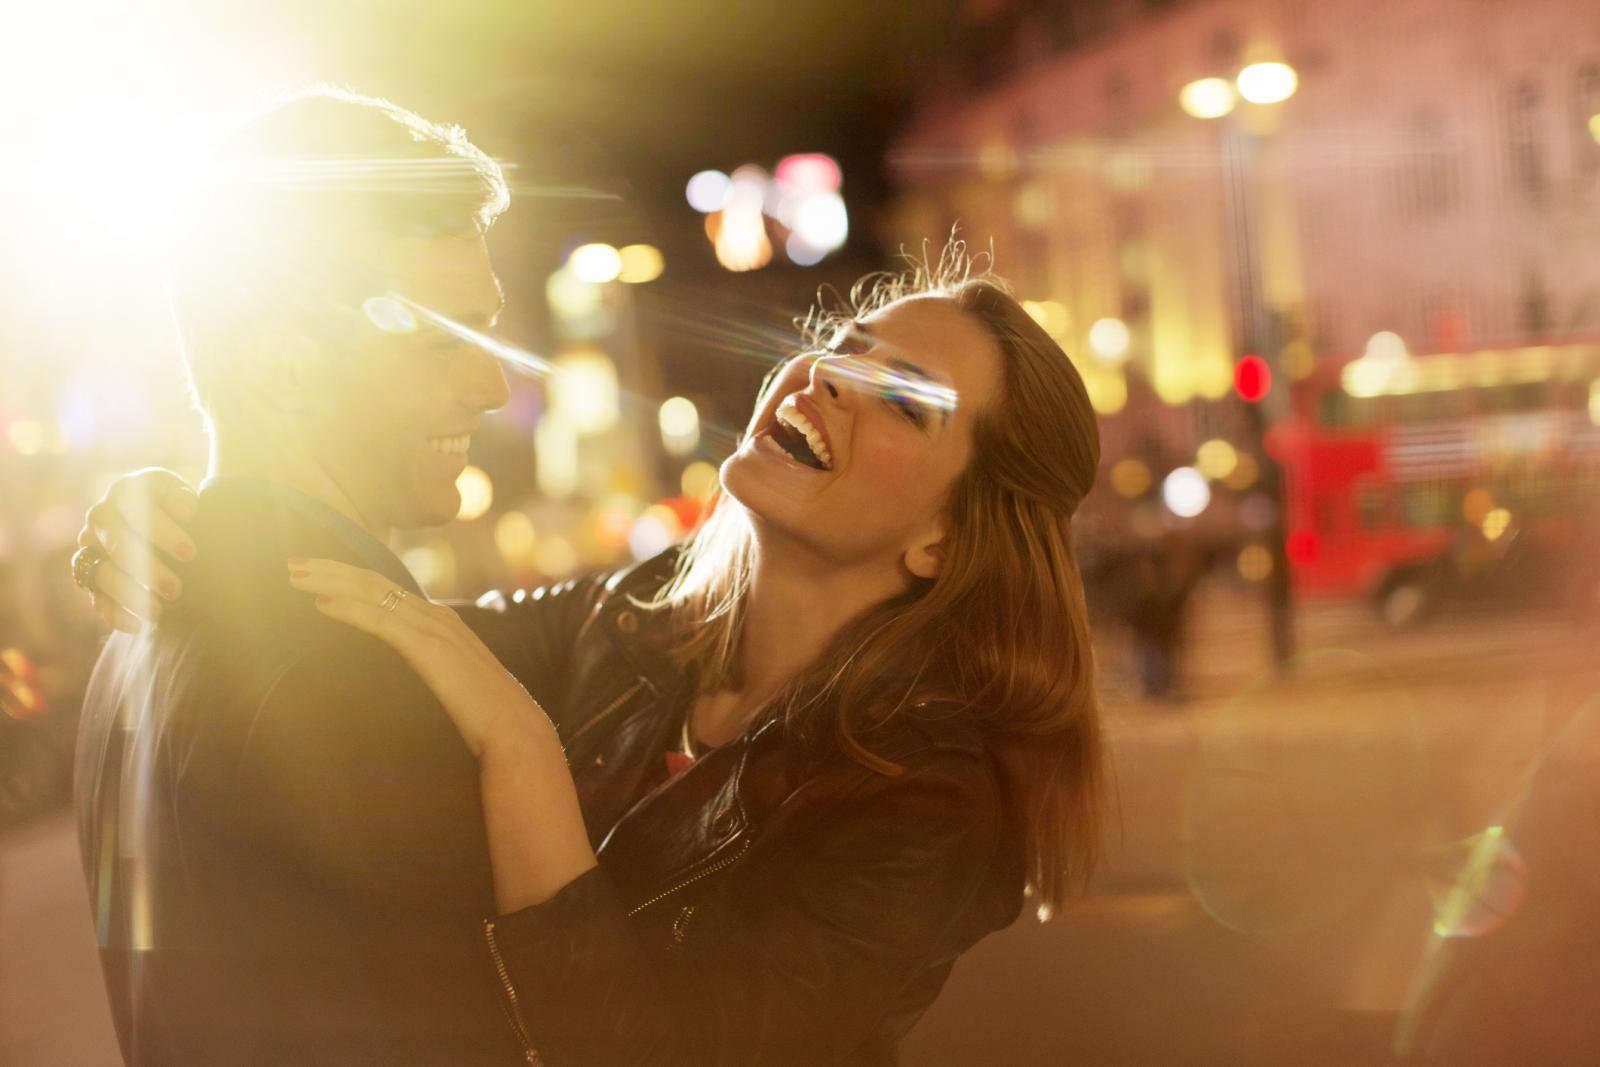 Couple hugging in the street at night